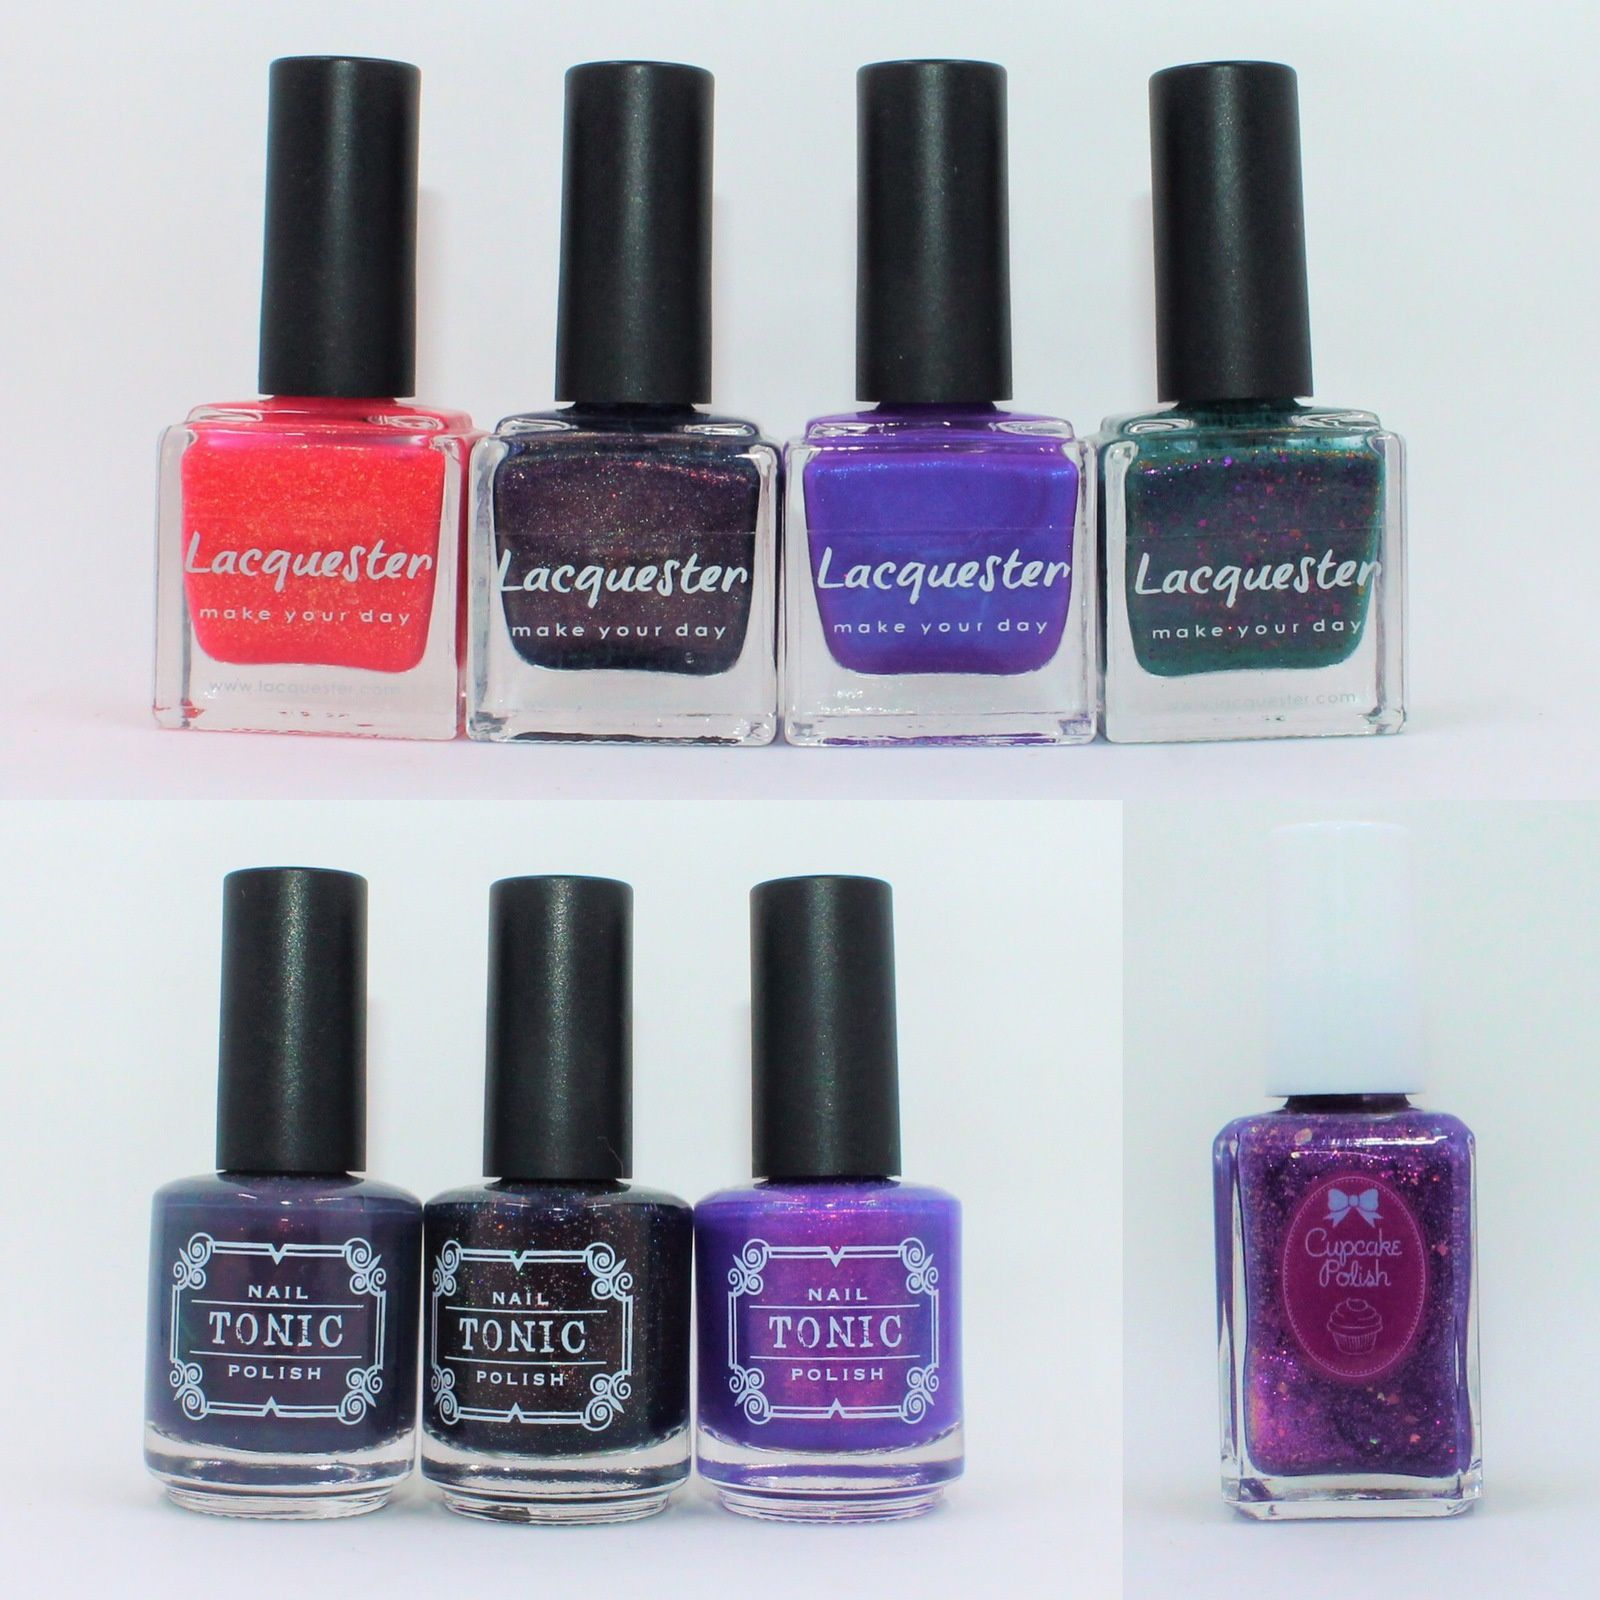 Lacquester Bahama Mama, Violets are Blue, Leave No Purple Behind, Dark Noise of Turquoise. Tonic Polish Pepper, Thriller, River. Cupcake Polish Solstice.